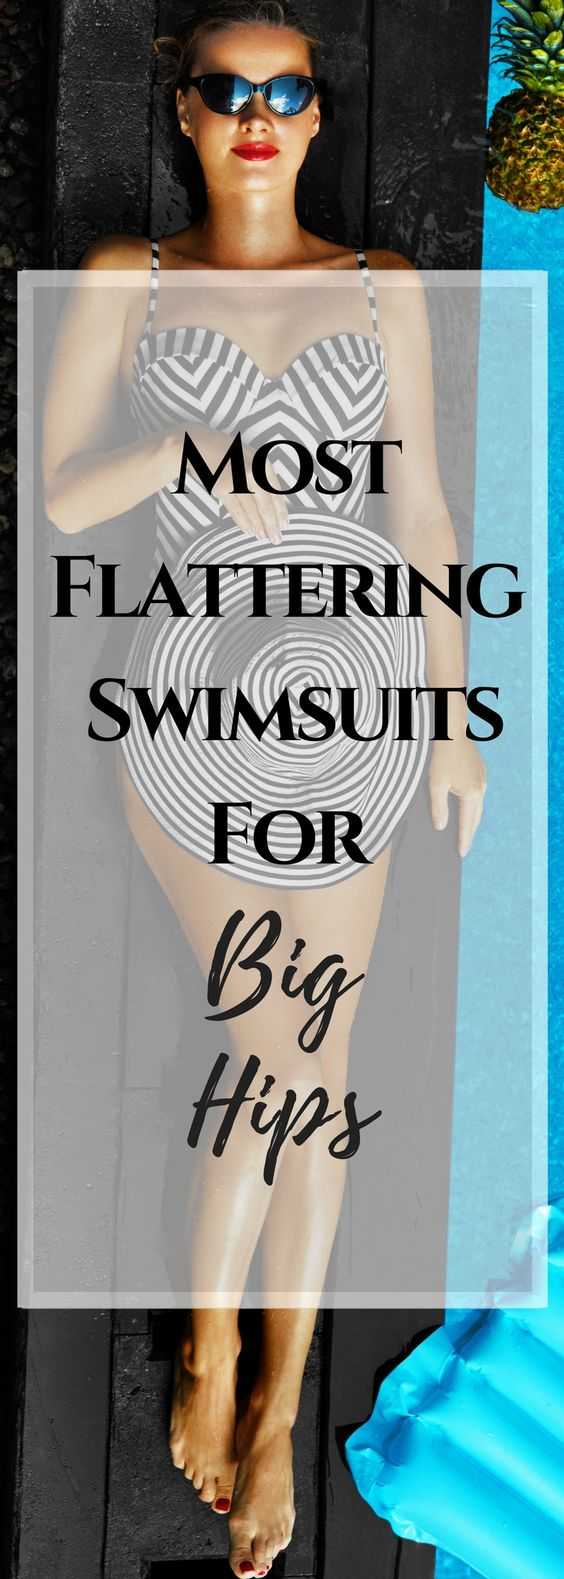 2017 Shopping Guide: Best Swimsuits for Big Hips